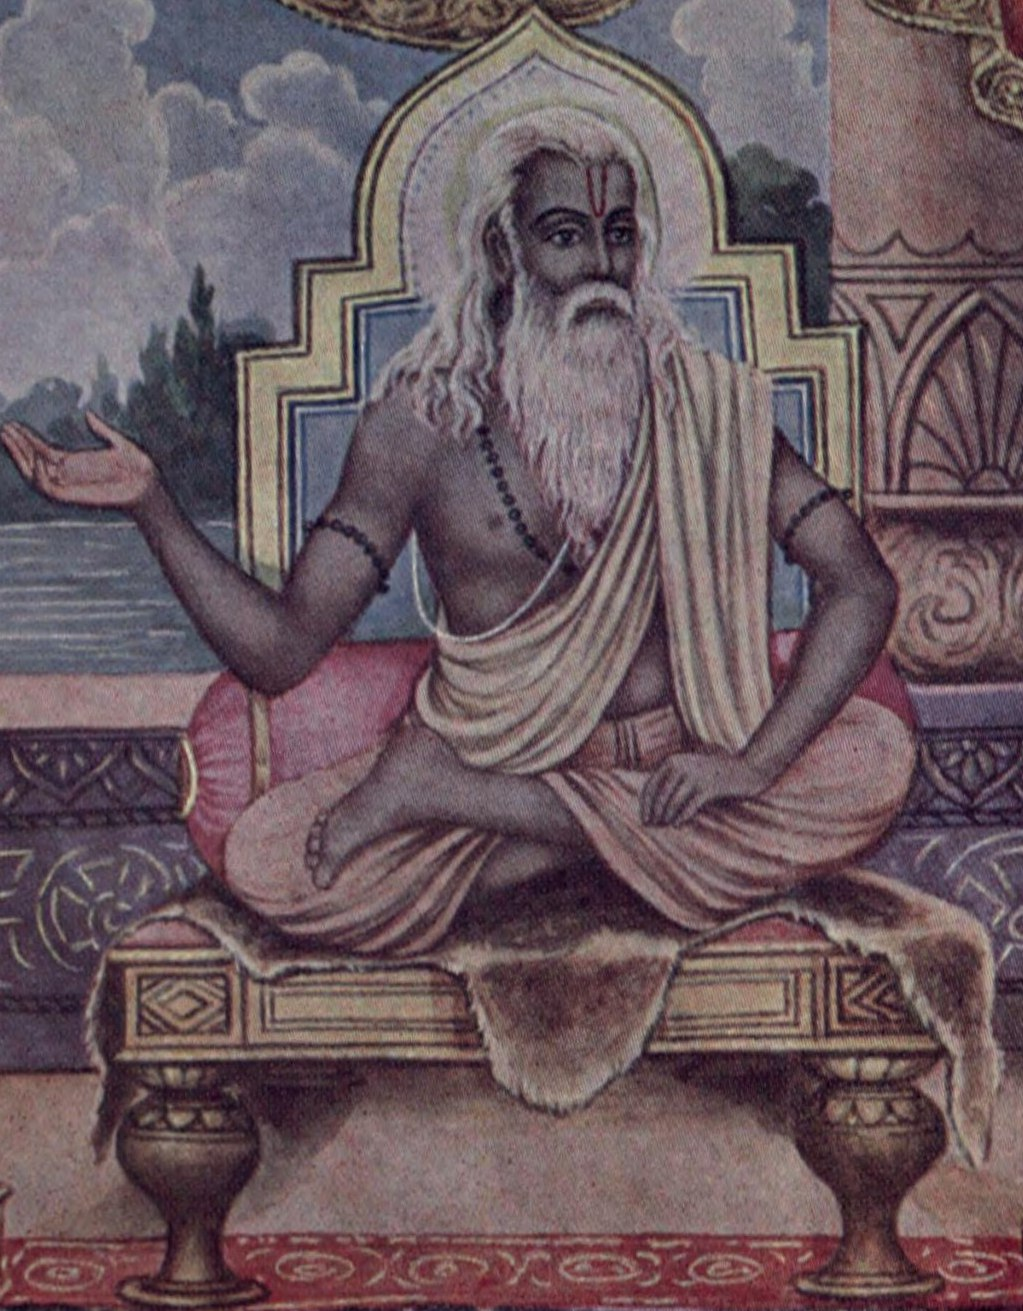 A portrayal of Vyasa, who is revered by Hindus...